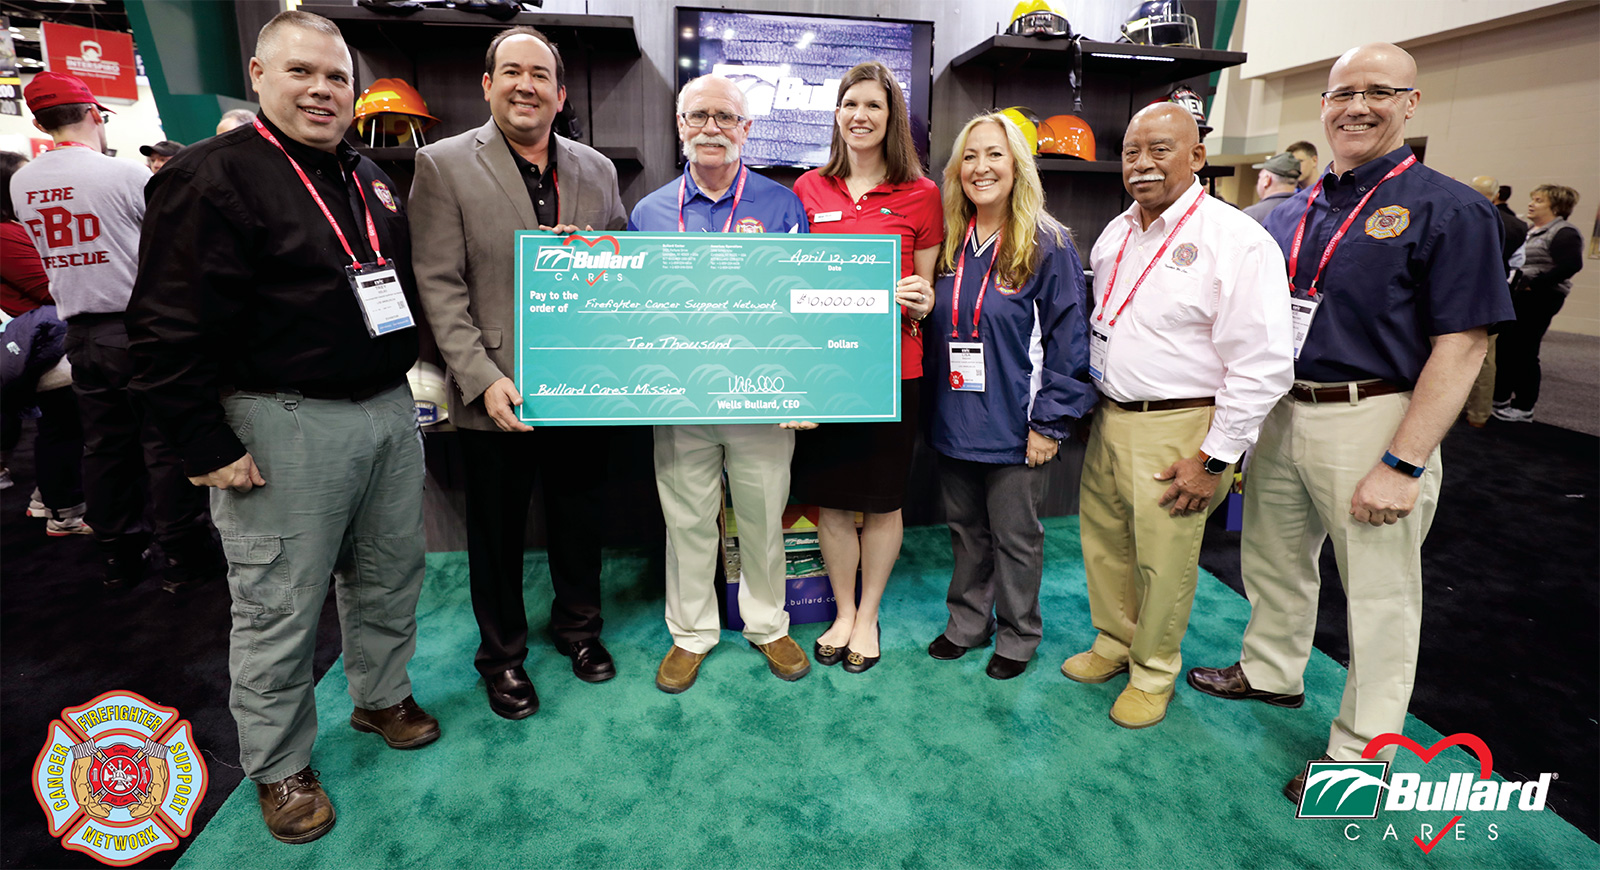 From Fcsn >> Bullard Donates To The Firefighter Cancer Support Network